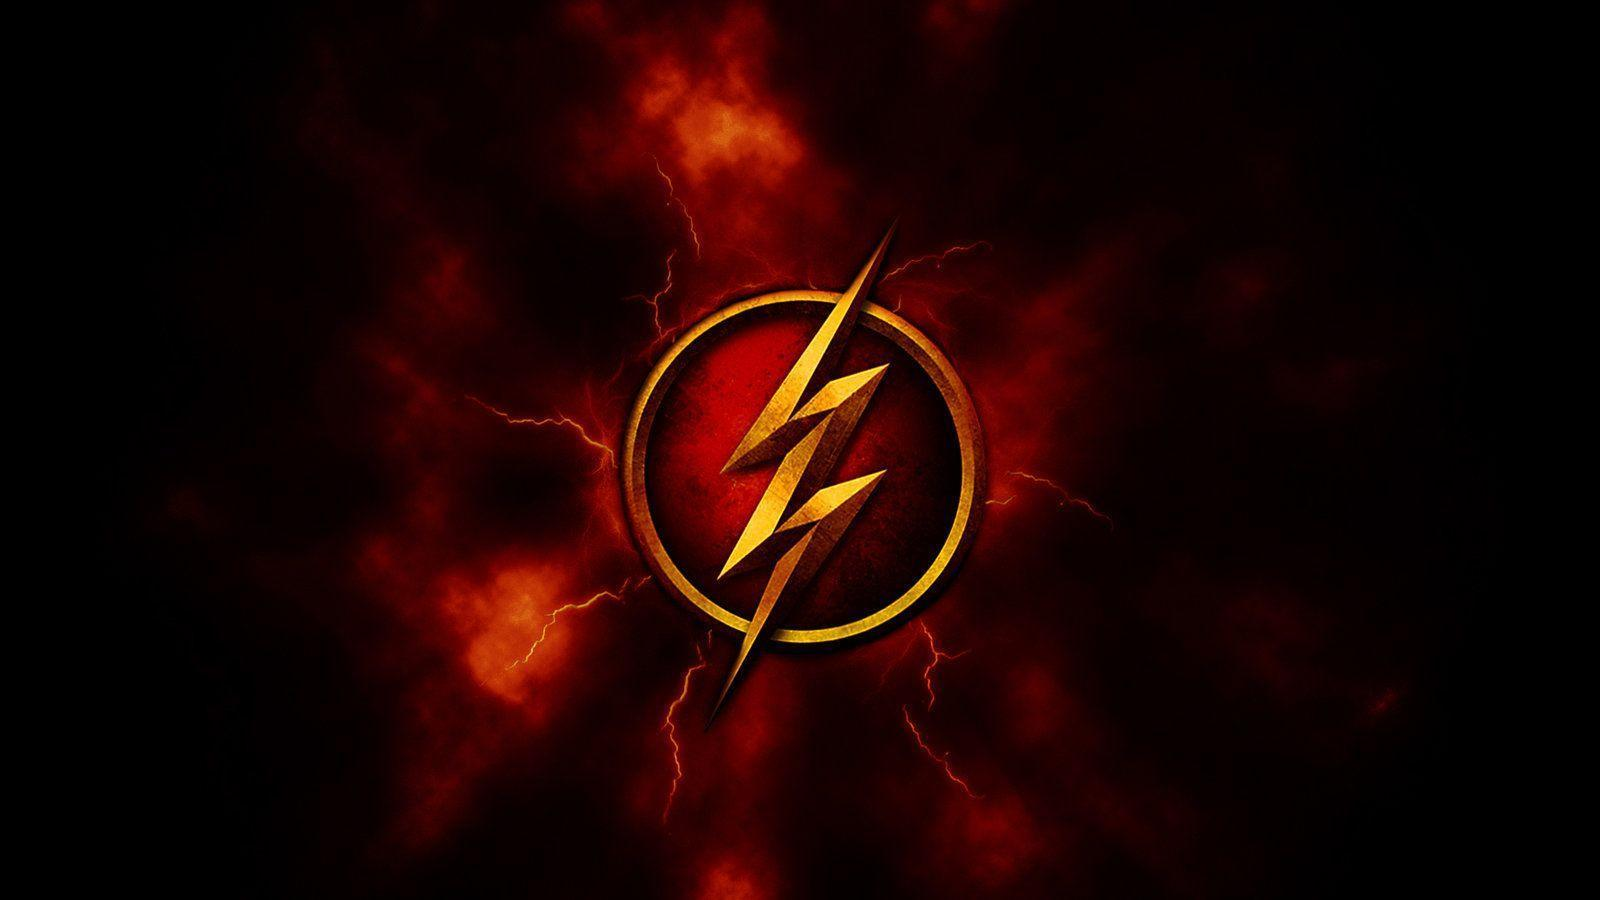 Flash Wallpapers Hd Resolution ~ Sdeerwallpapers